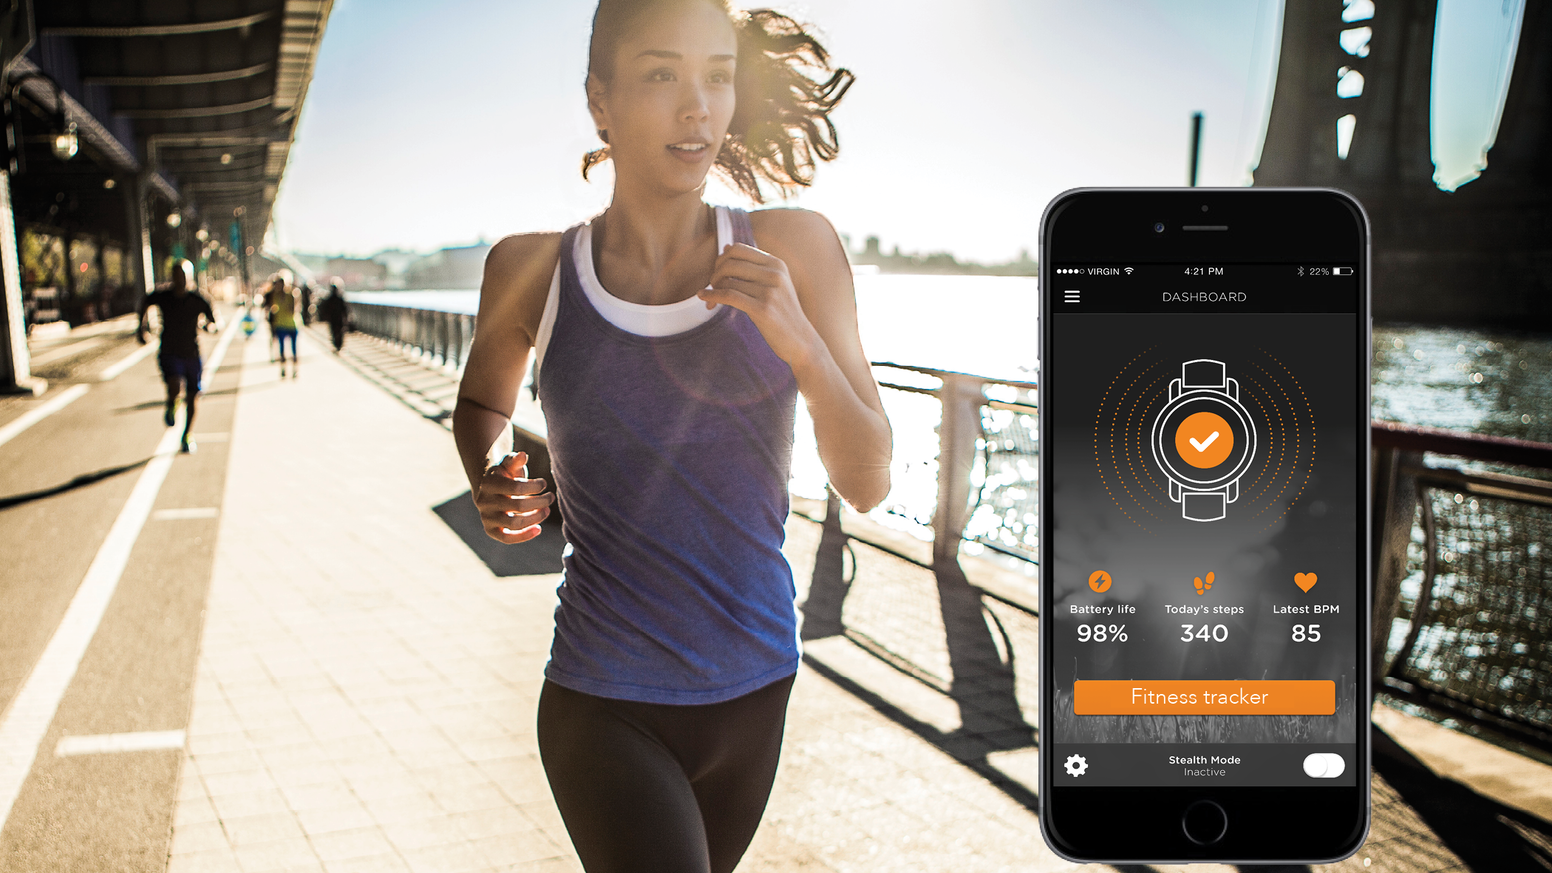 The World's first device to turn your own watch into a smartwatch. Get fit in a bit and so much more!